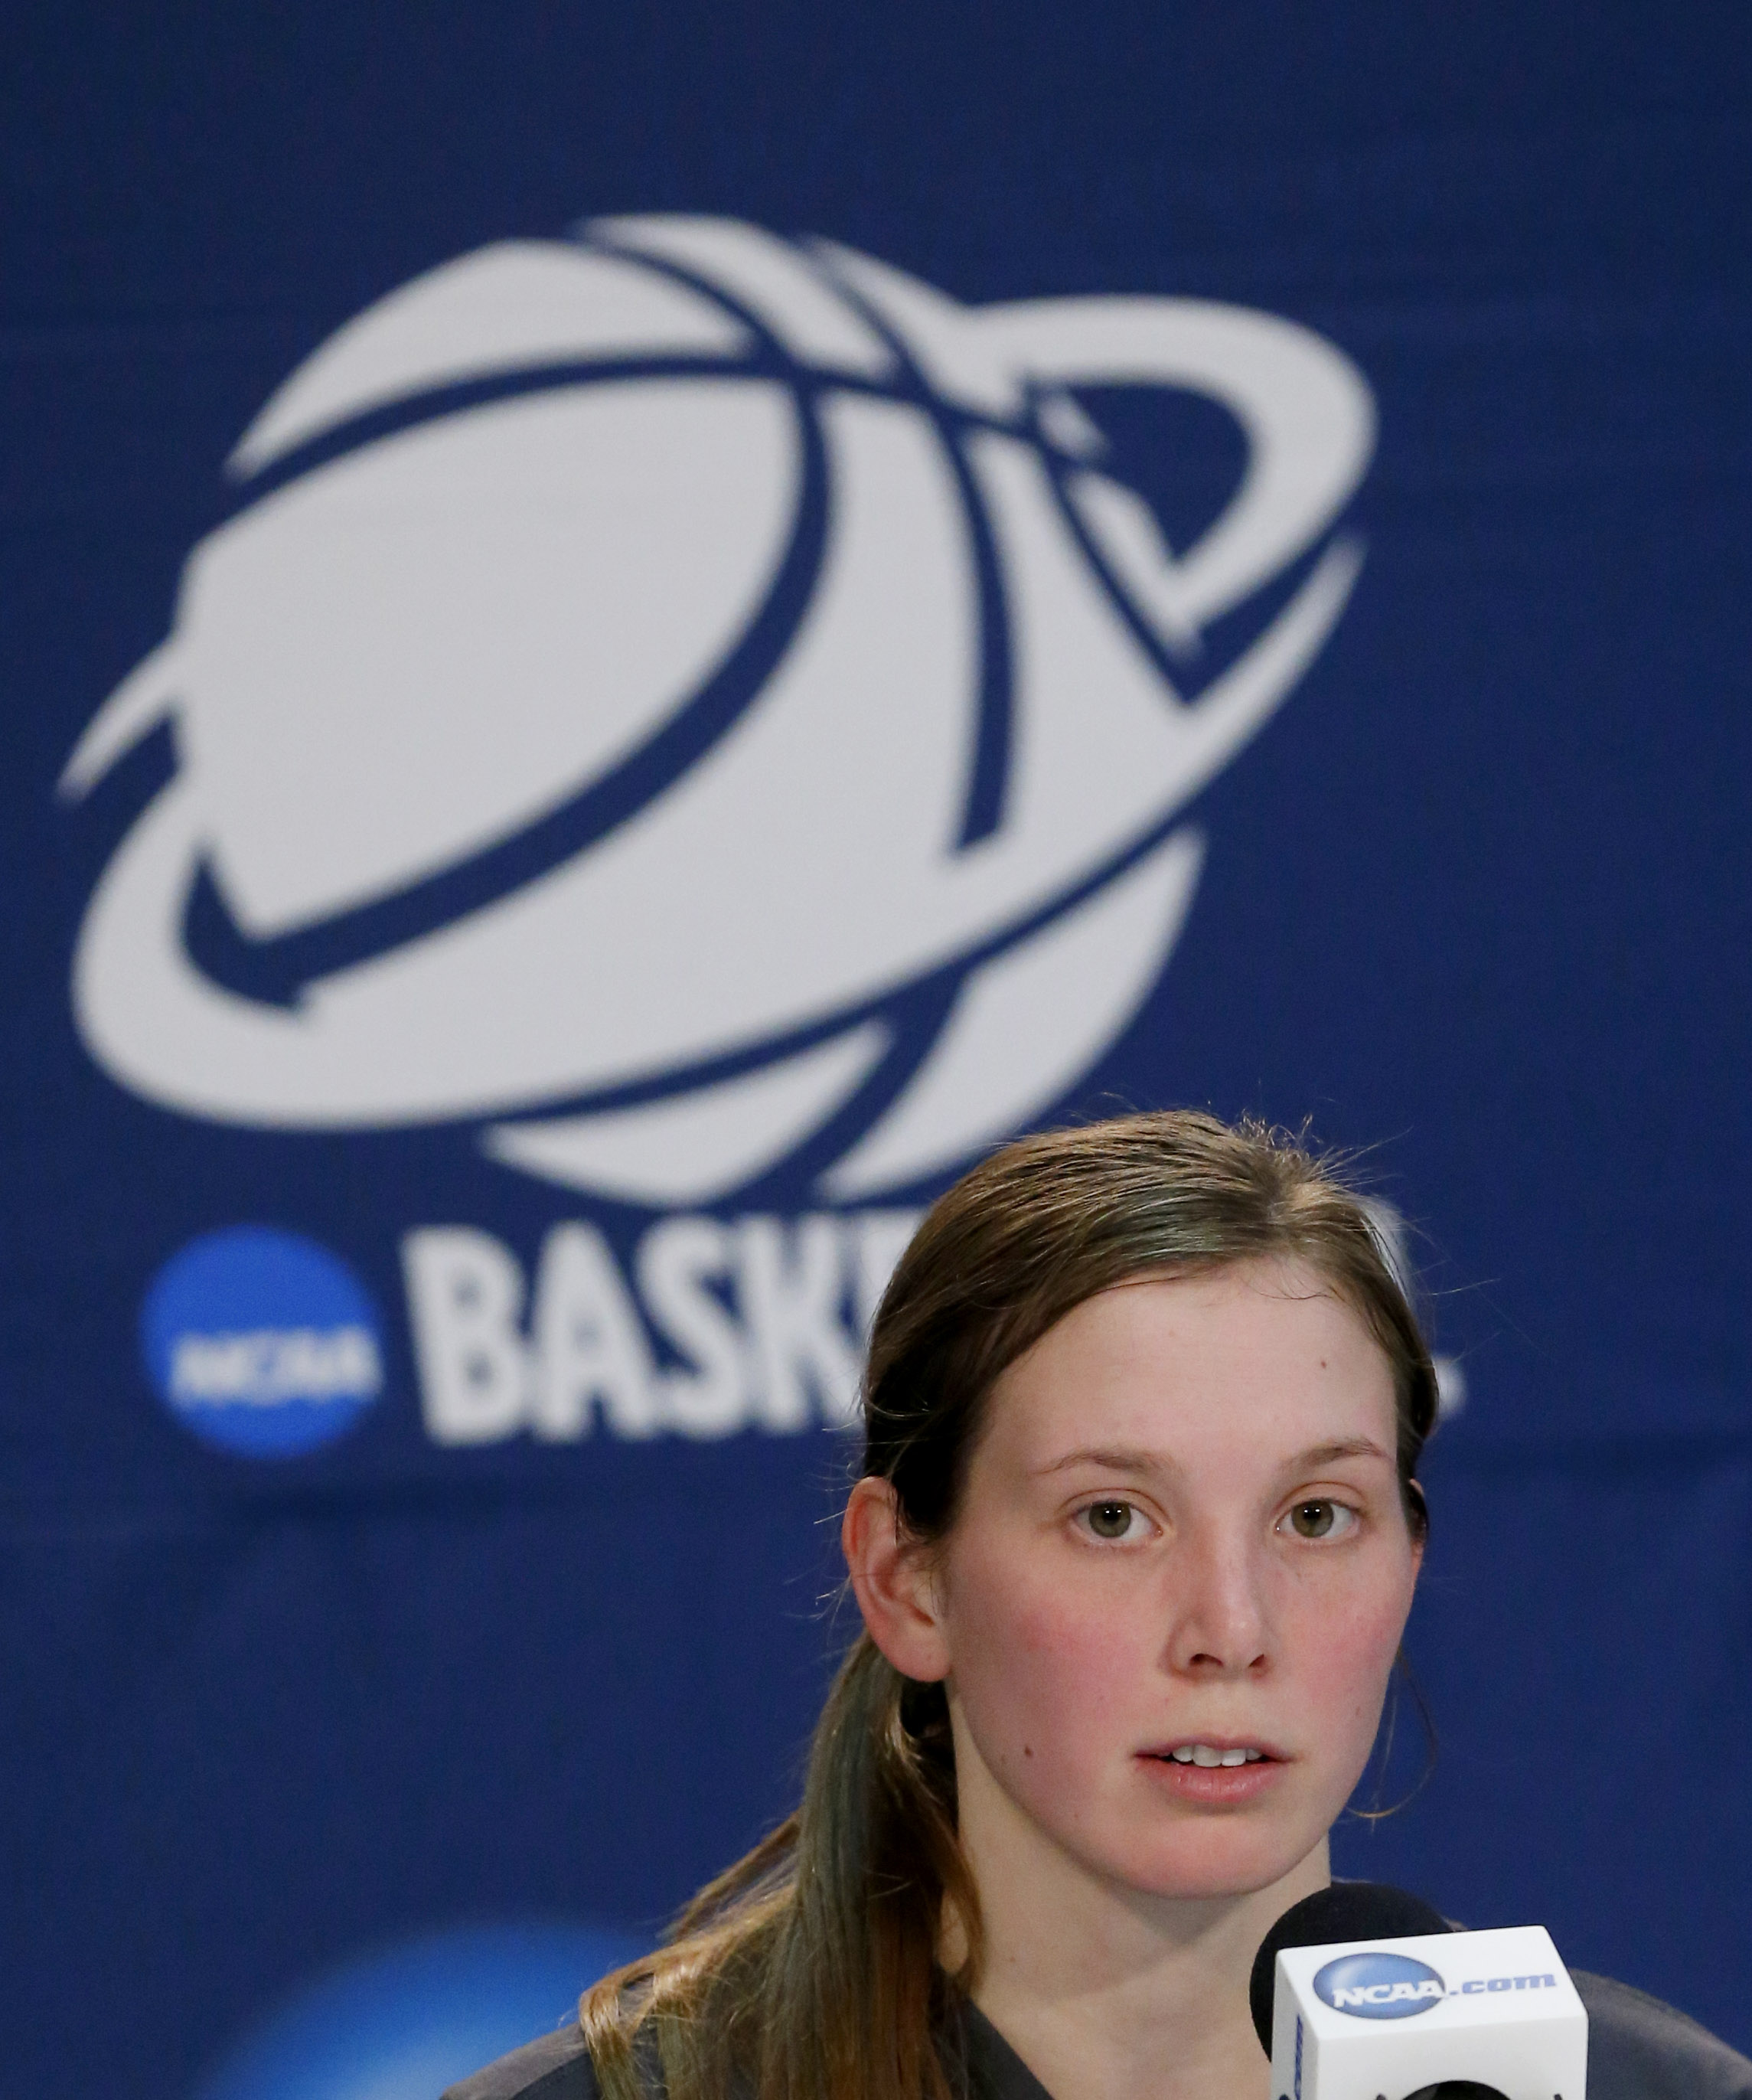 Notre Dame guard Madison Cable listens during a news conference after a women's college basketball regional final game against Baylor in the NCAA Tournament, Sunday, March 29, 2015, in Oklahoma City. (AP Photo/Sue Ogrocki)